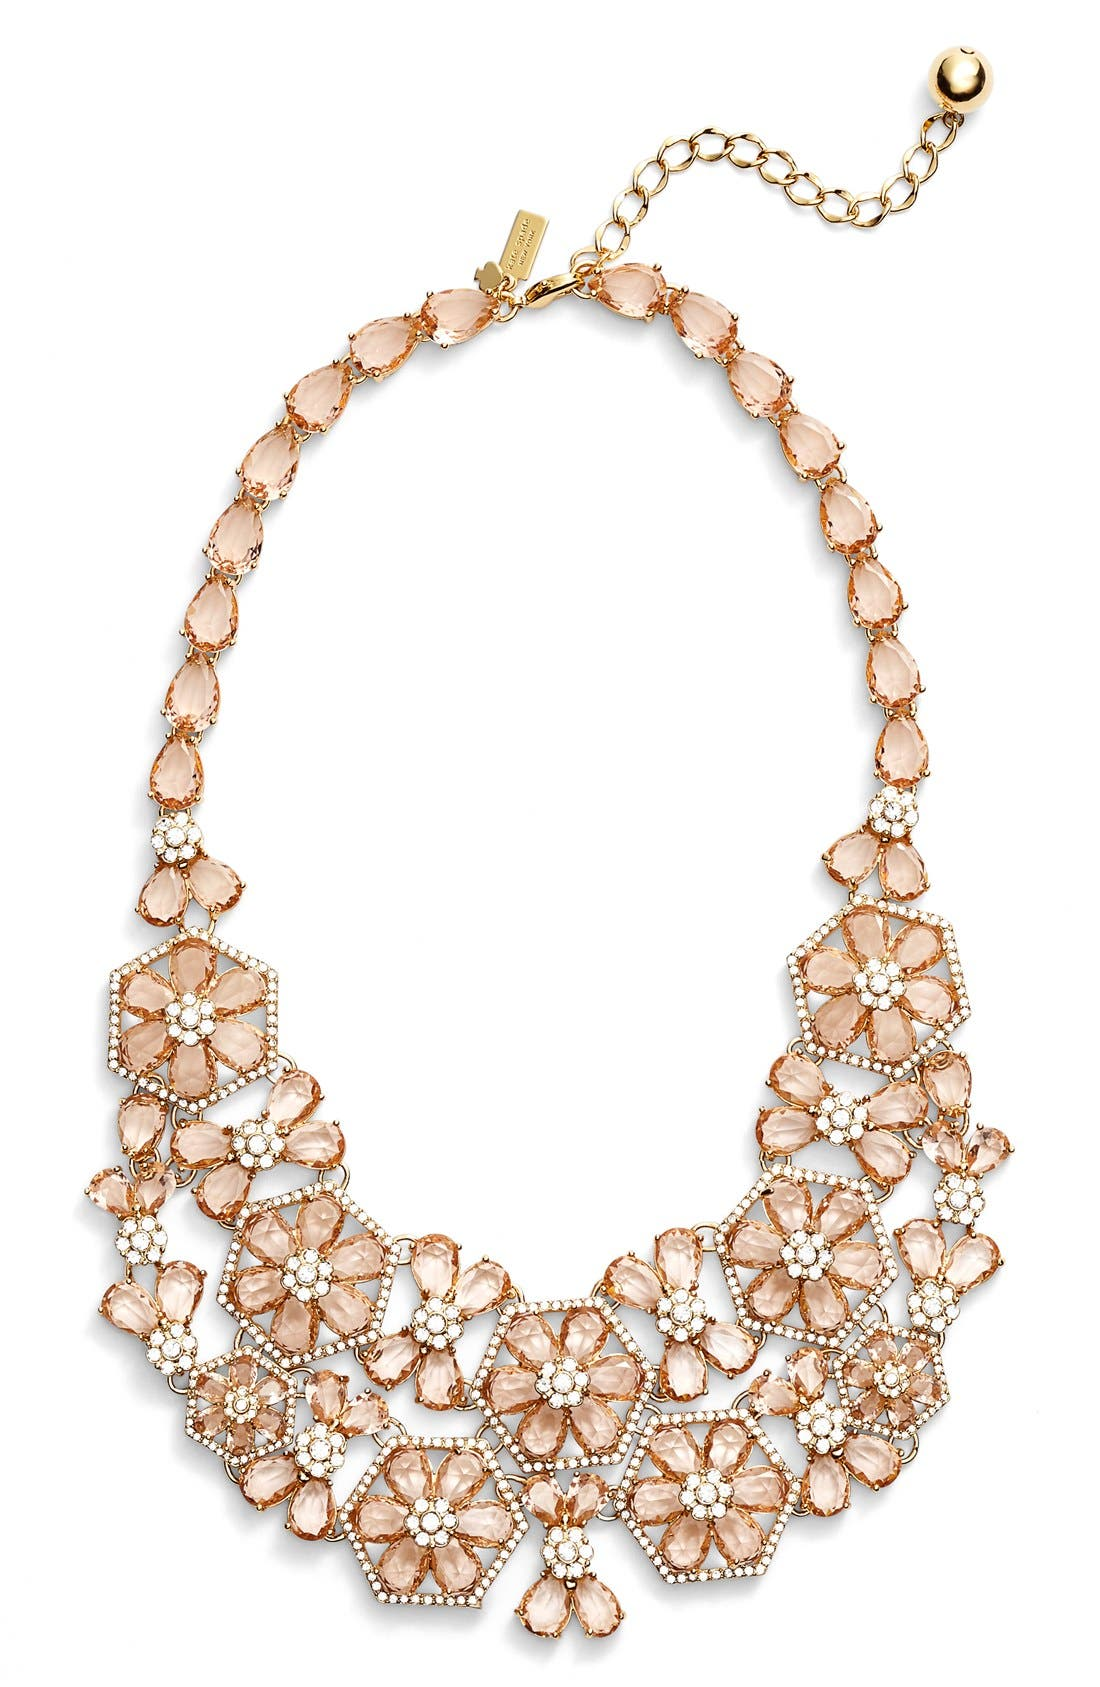 Main Image - kate spade new york 'at first blush' floral bib necklace